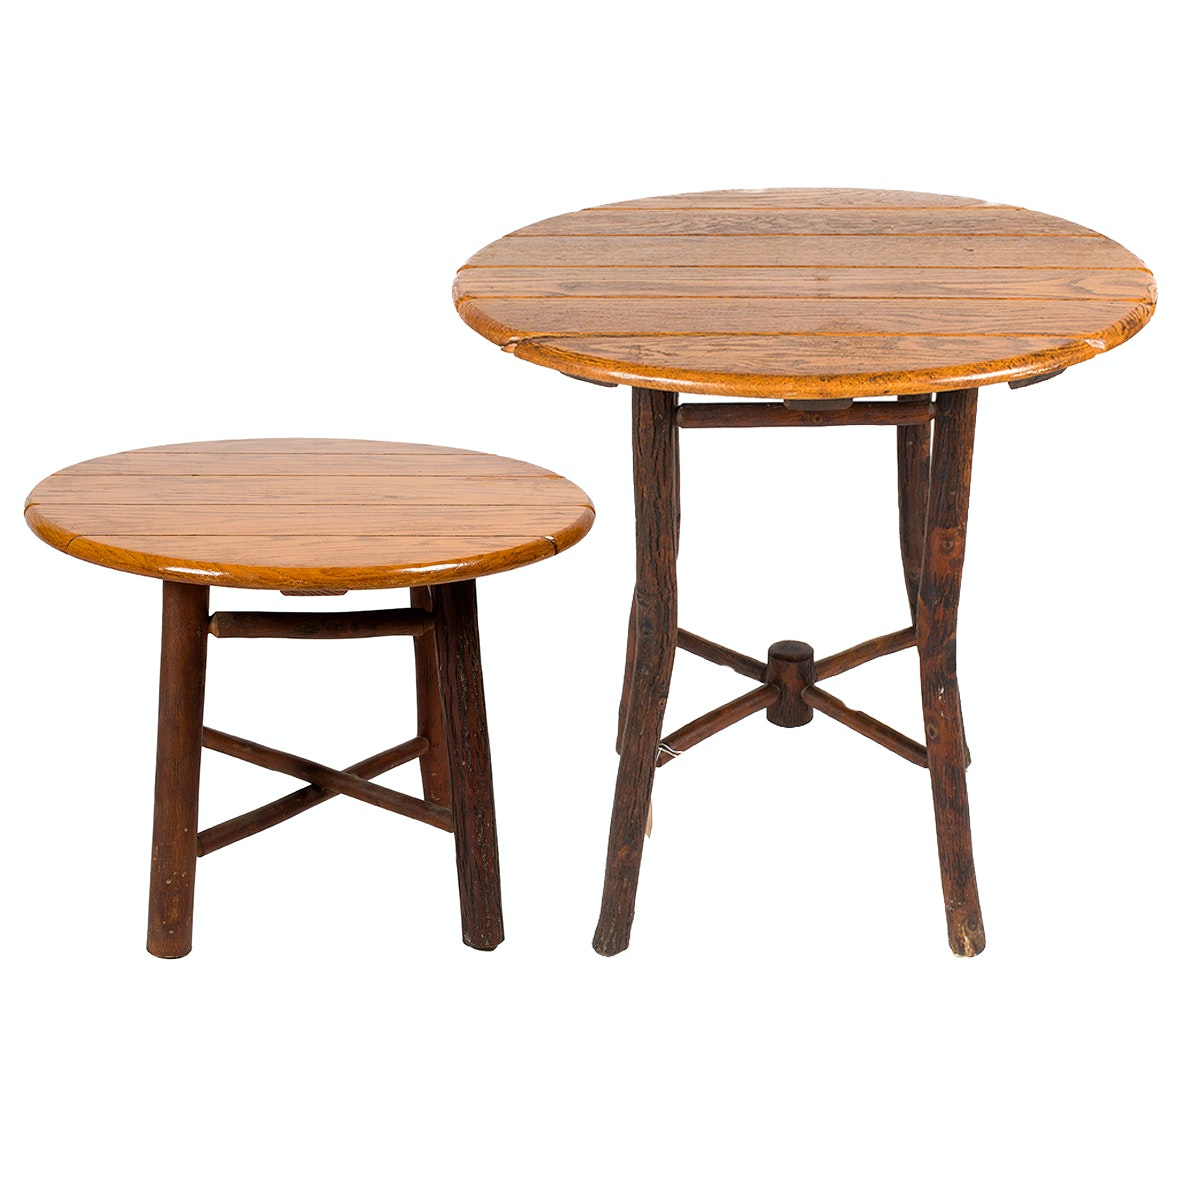 Old Hickory Rustic Table and Small Side Table